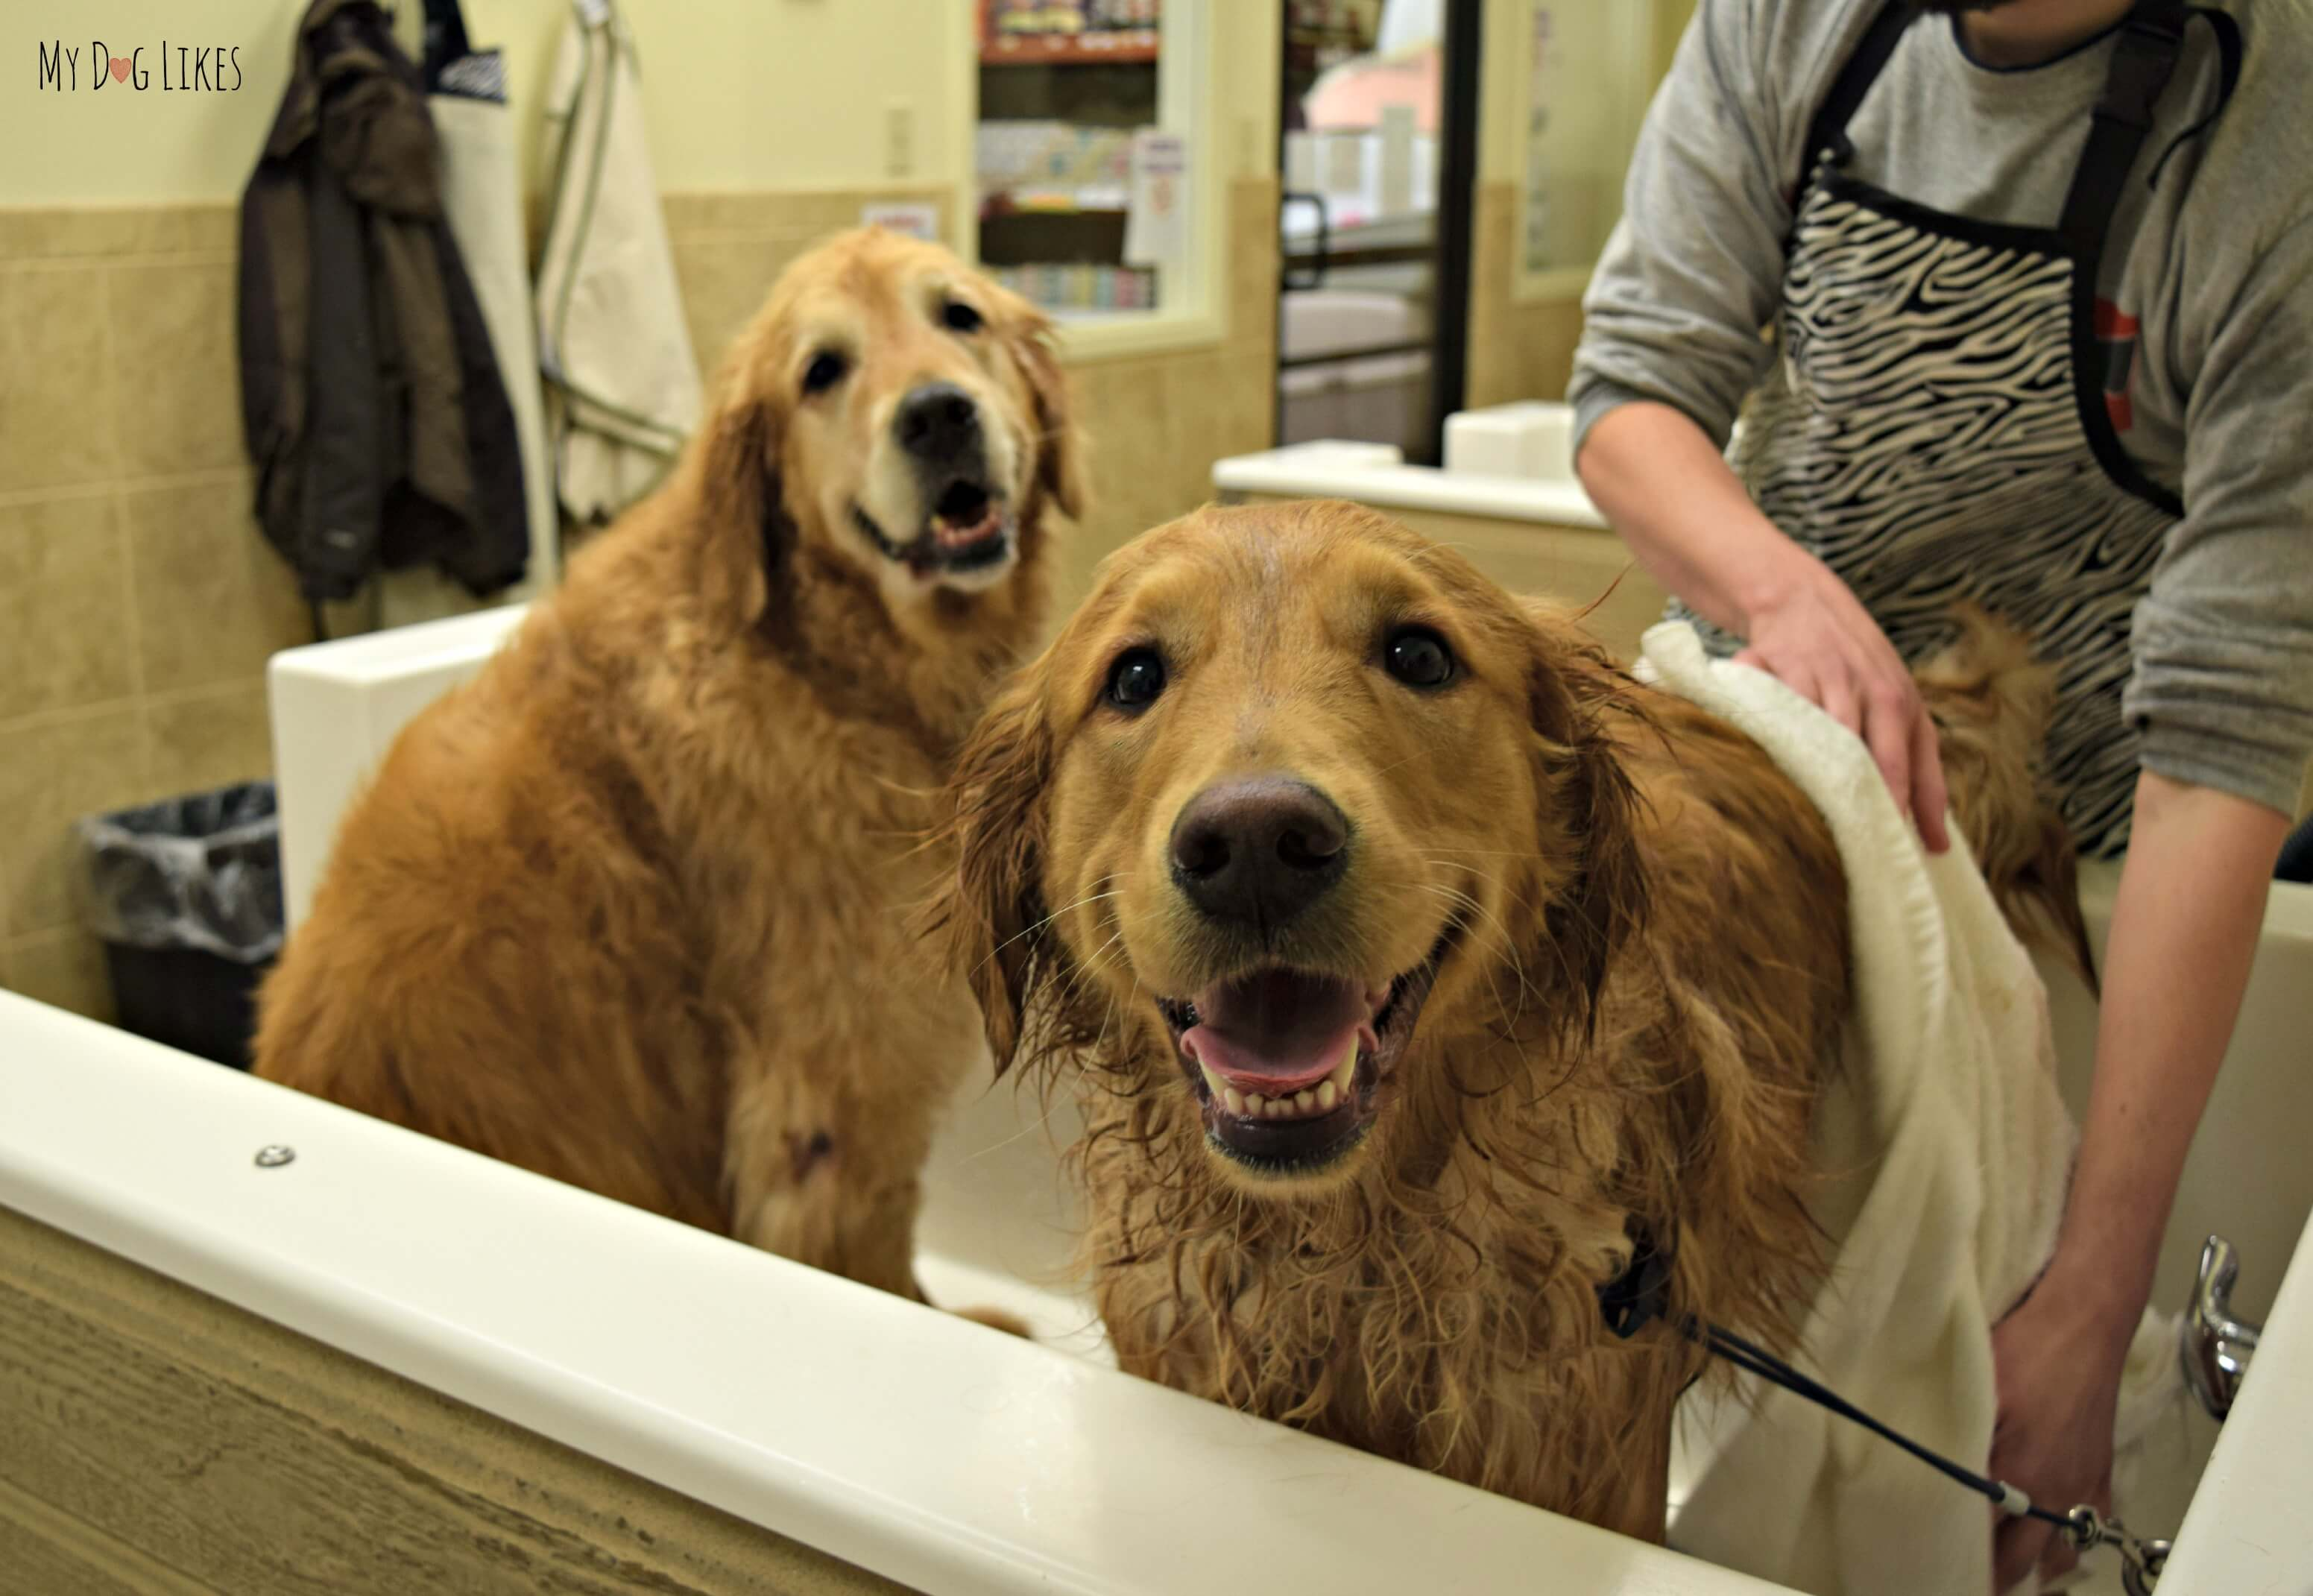 How to bathe a dog a step by step guide harley jumped into the dog bath tub while we were giving charlie a bath solutioingenieria Gallery